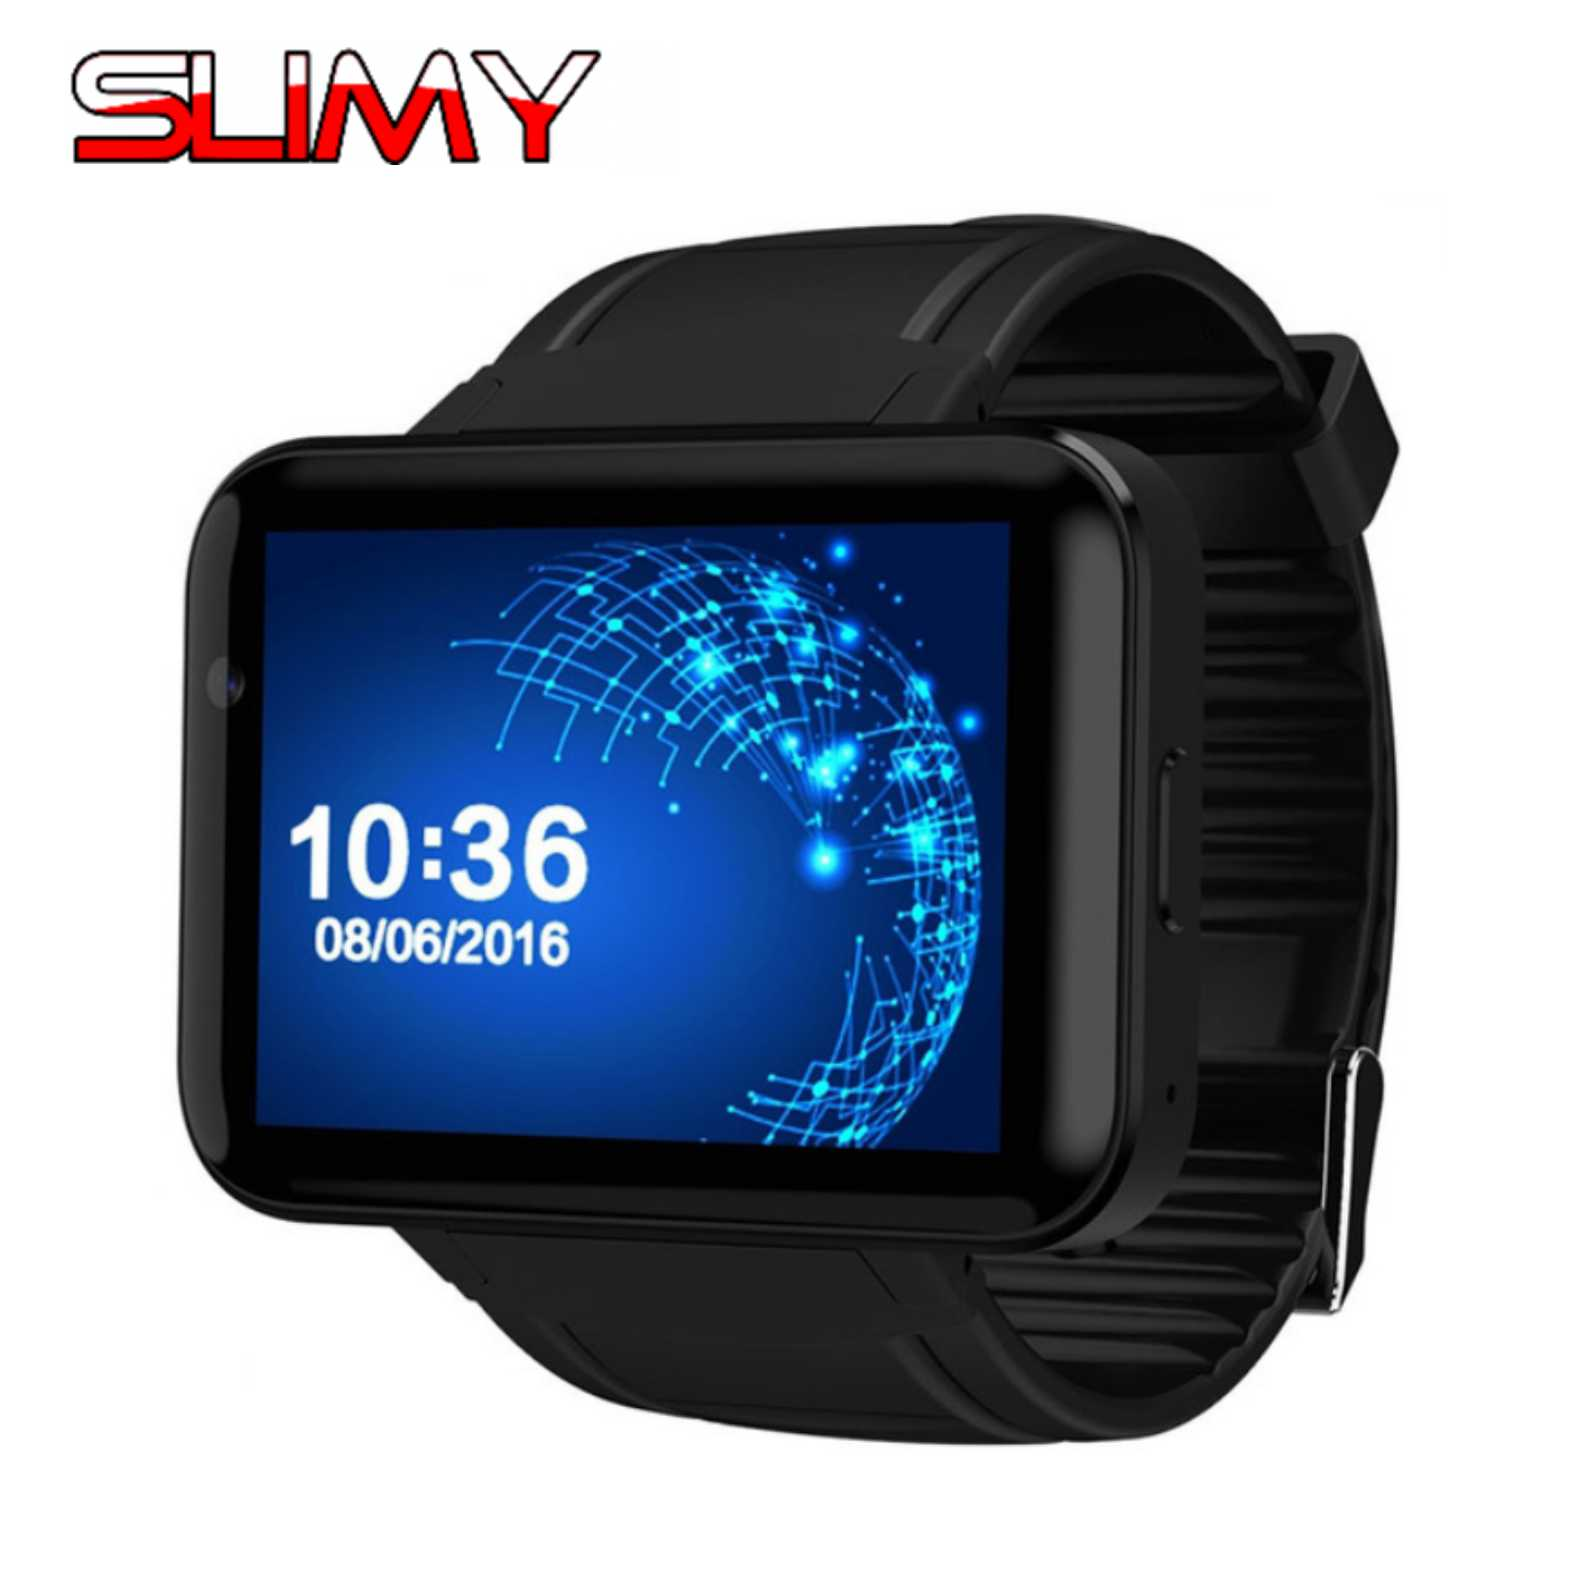 Slimy 3G Smart Watch Phone With WiFi GPS Location Bluetooth Earphone SIM Android 4.4 OS Bluetooth Smartwatch PK KW88 X02S I4 no 1 d5 bluetooth smart watch phone android 4 4 smartwatch waterproof heart rate mtk6572 1 3 inch gps 4g 512m wristwatch for ios